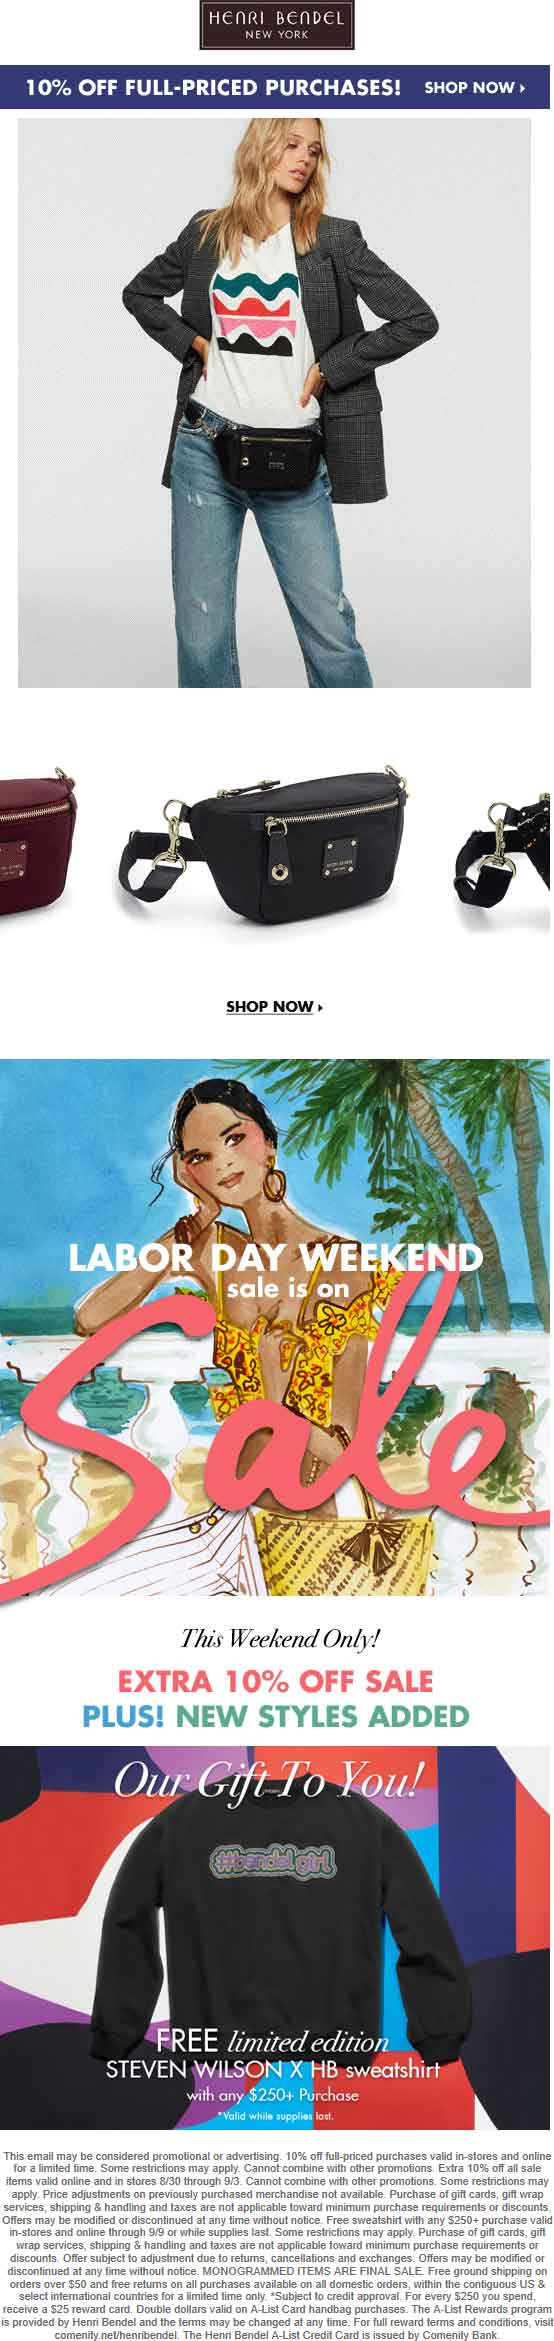 Henri Bendel Coupon November 2019 Extra 10% off sale items + free sweatshirt with $250 spent at Henri Bendel, ditto online